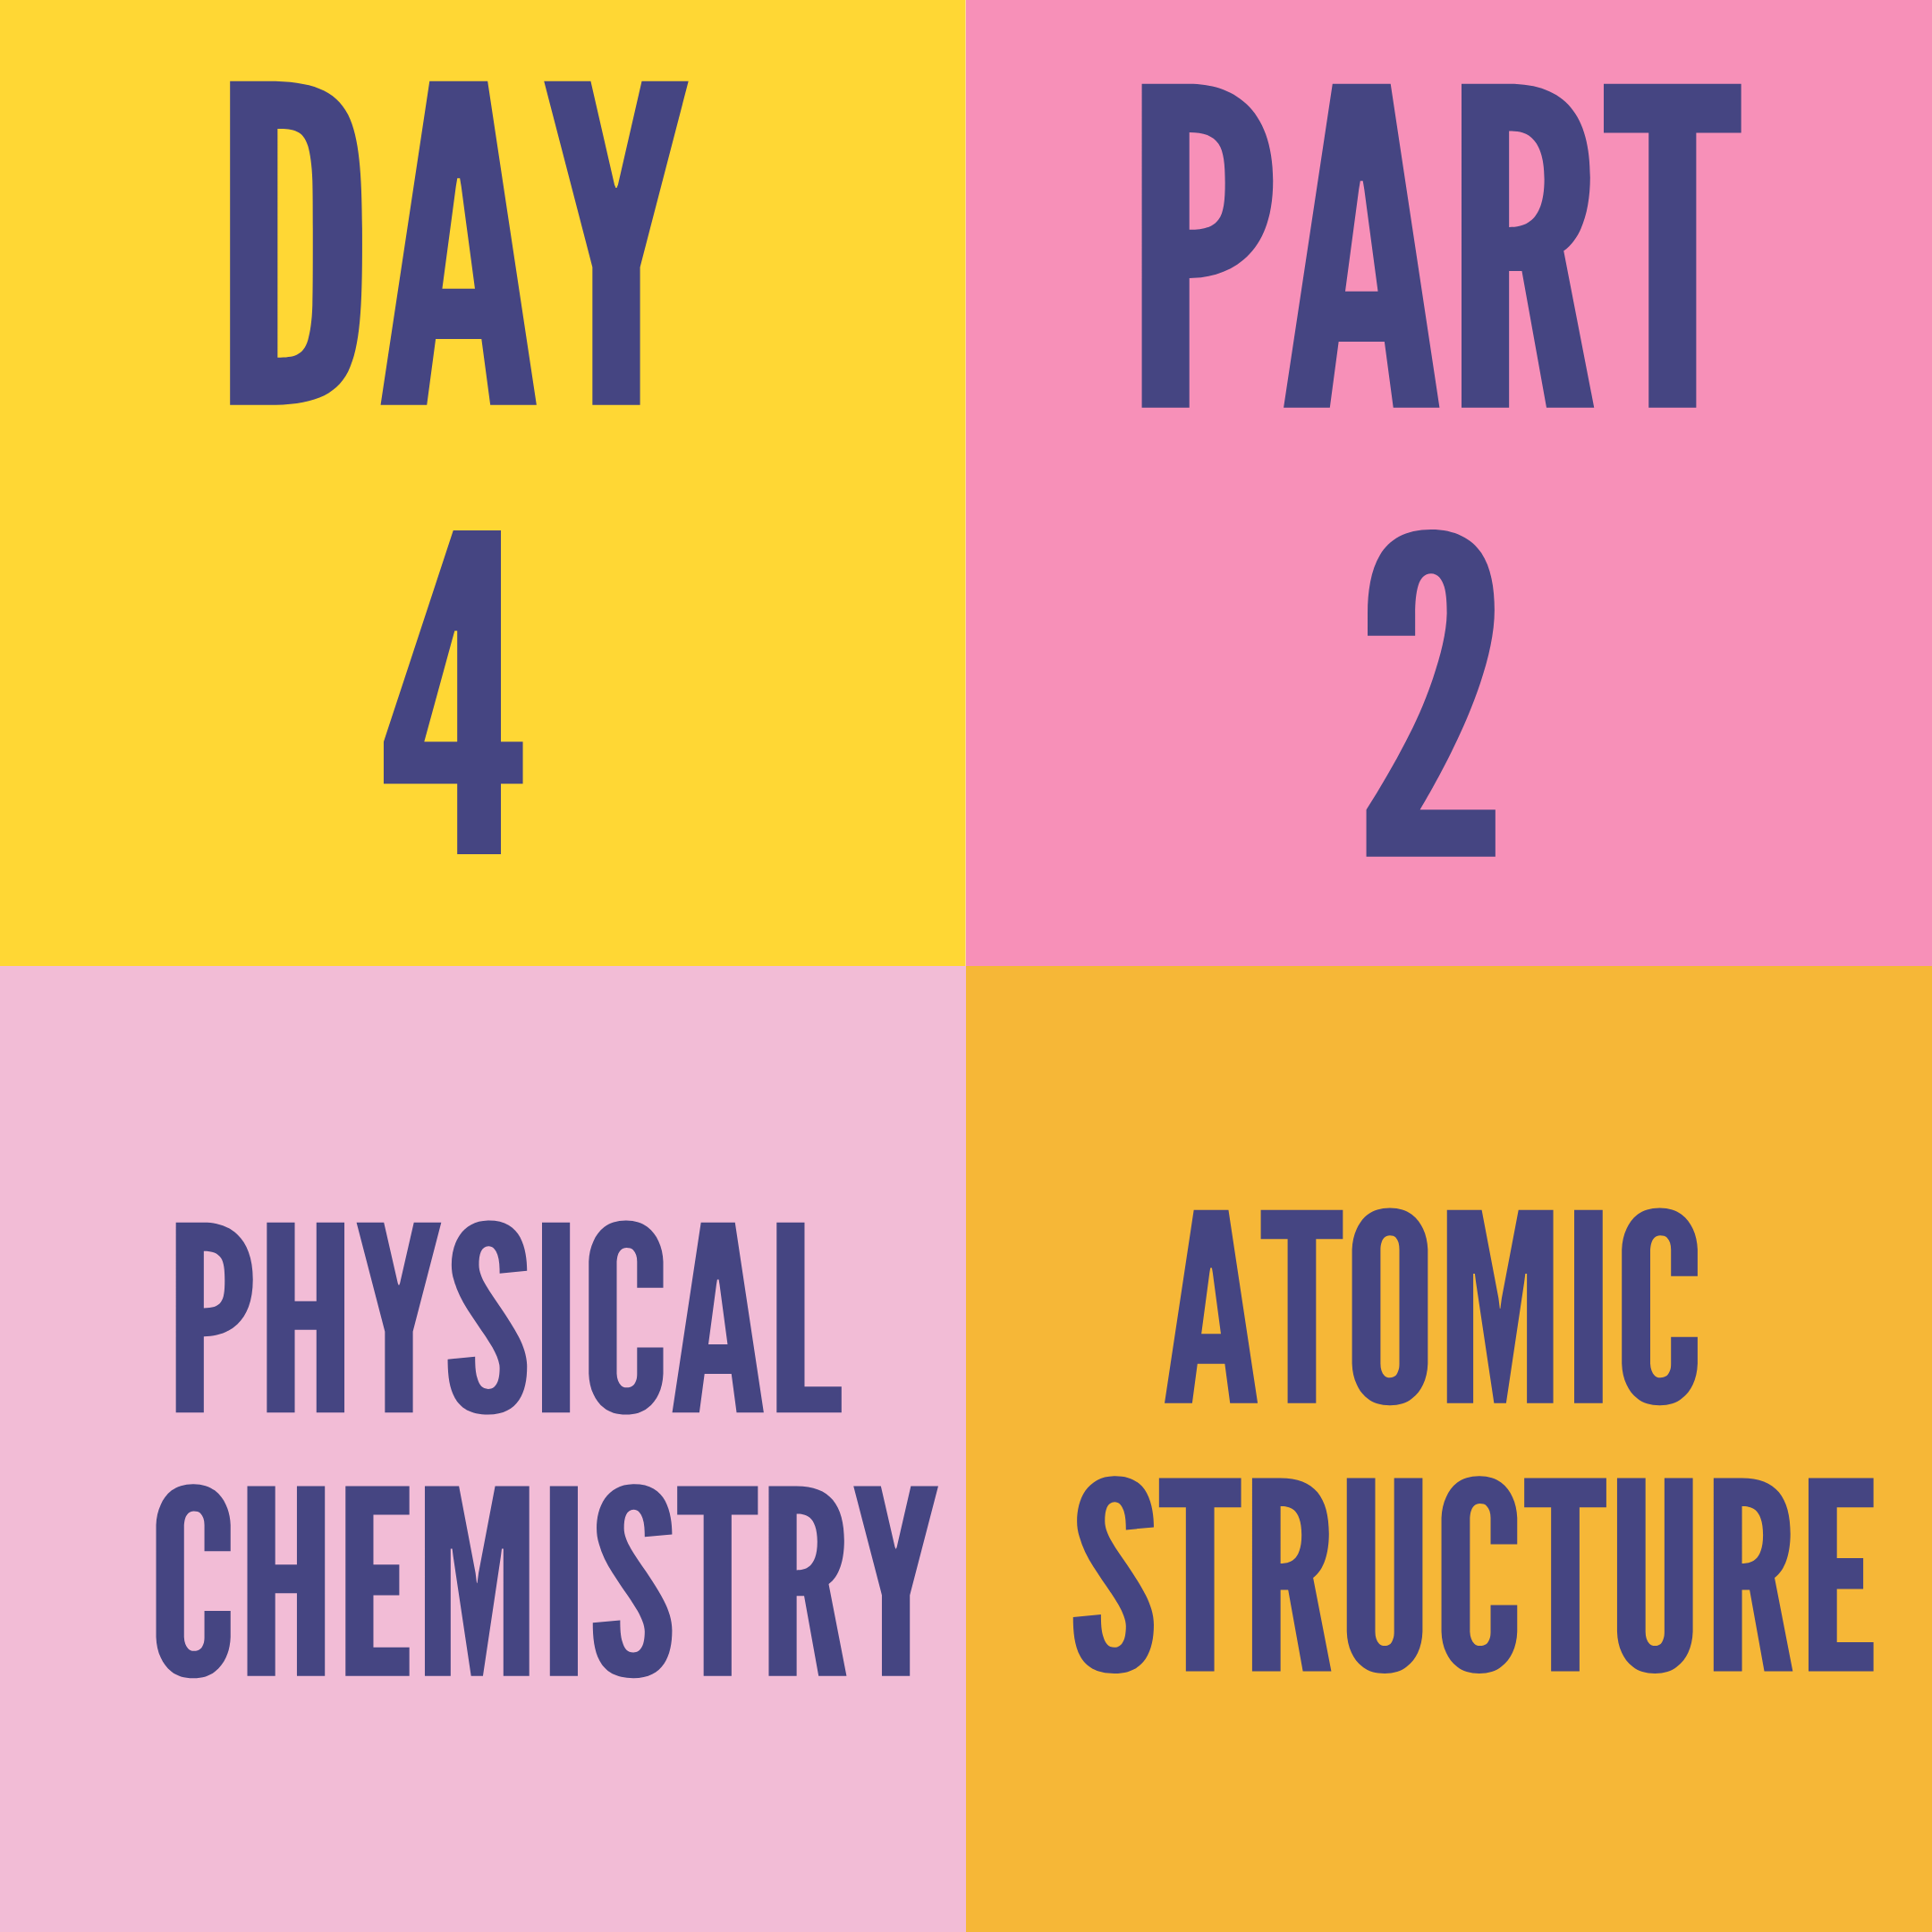 DAY-4 PART-2 ATOMIC STRUCTURE